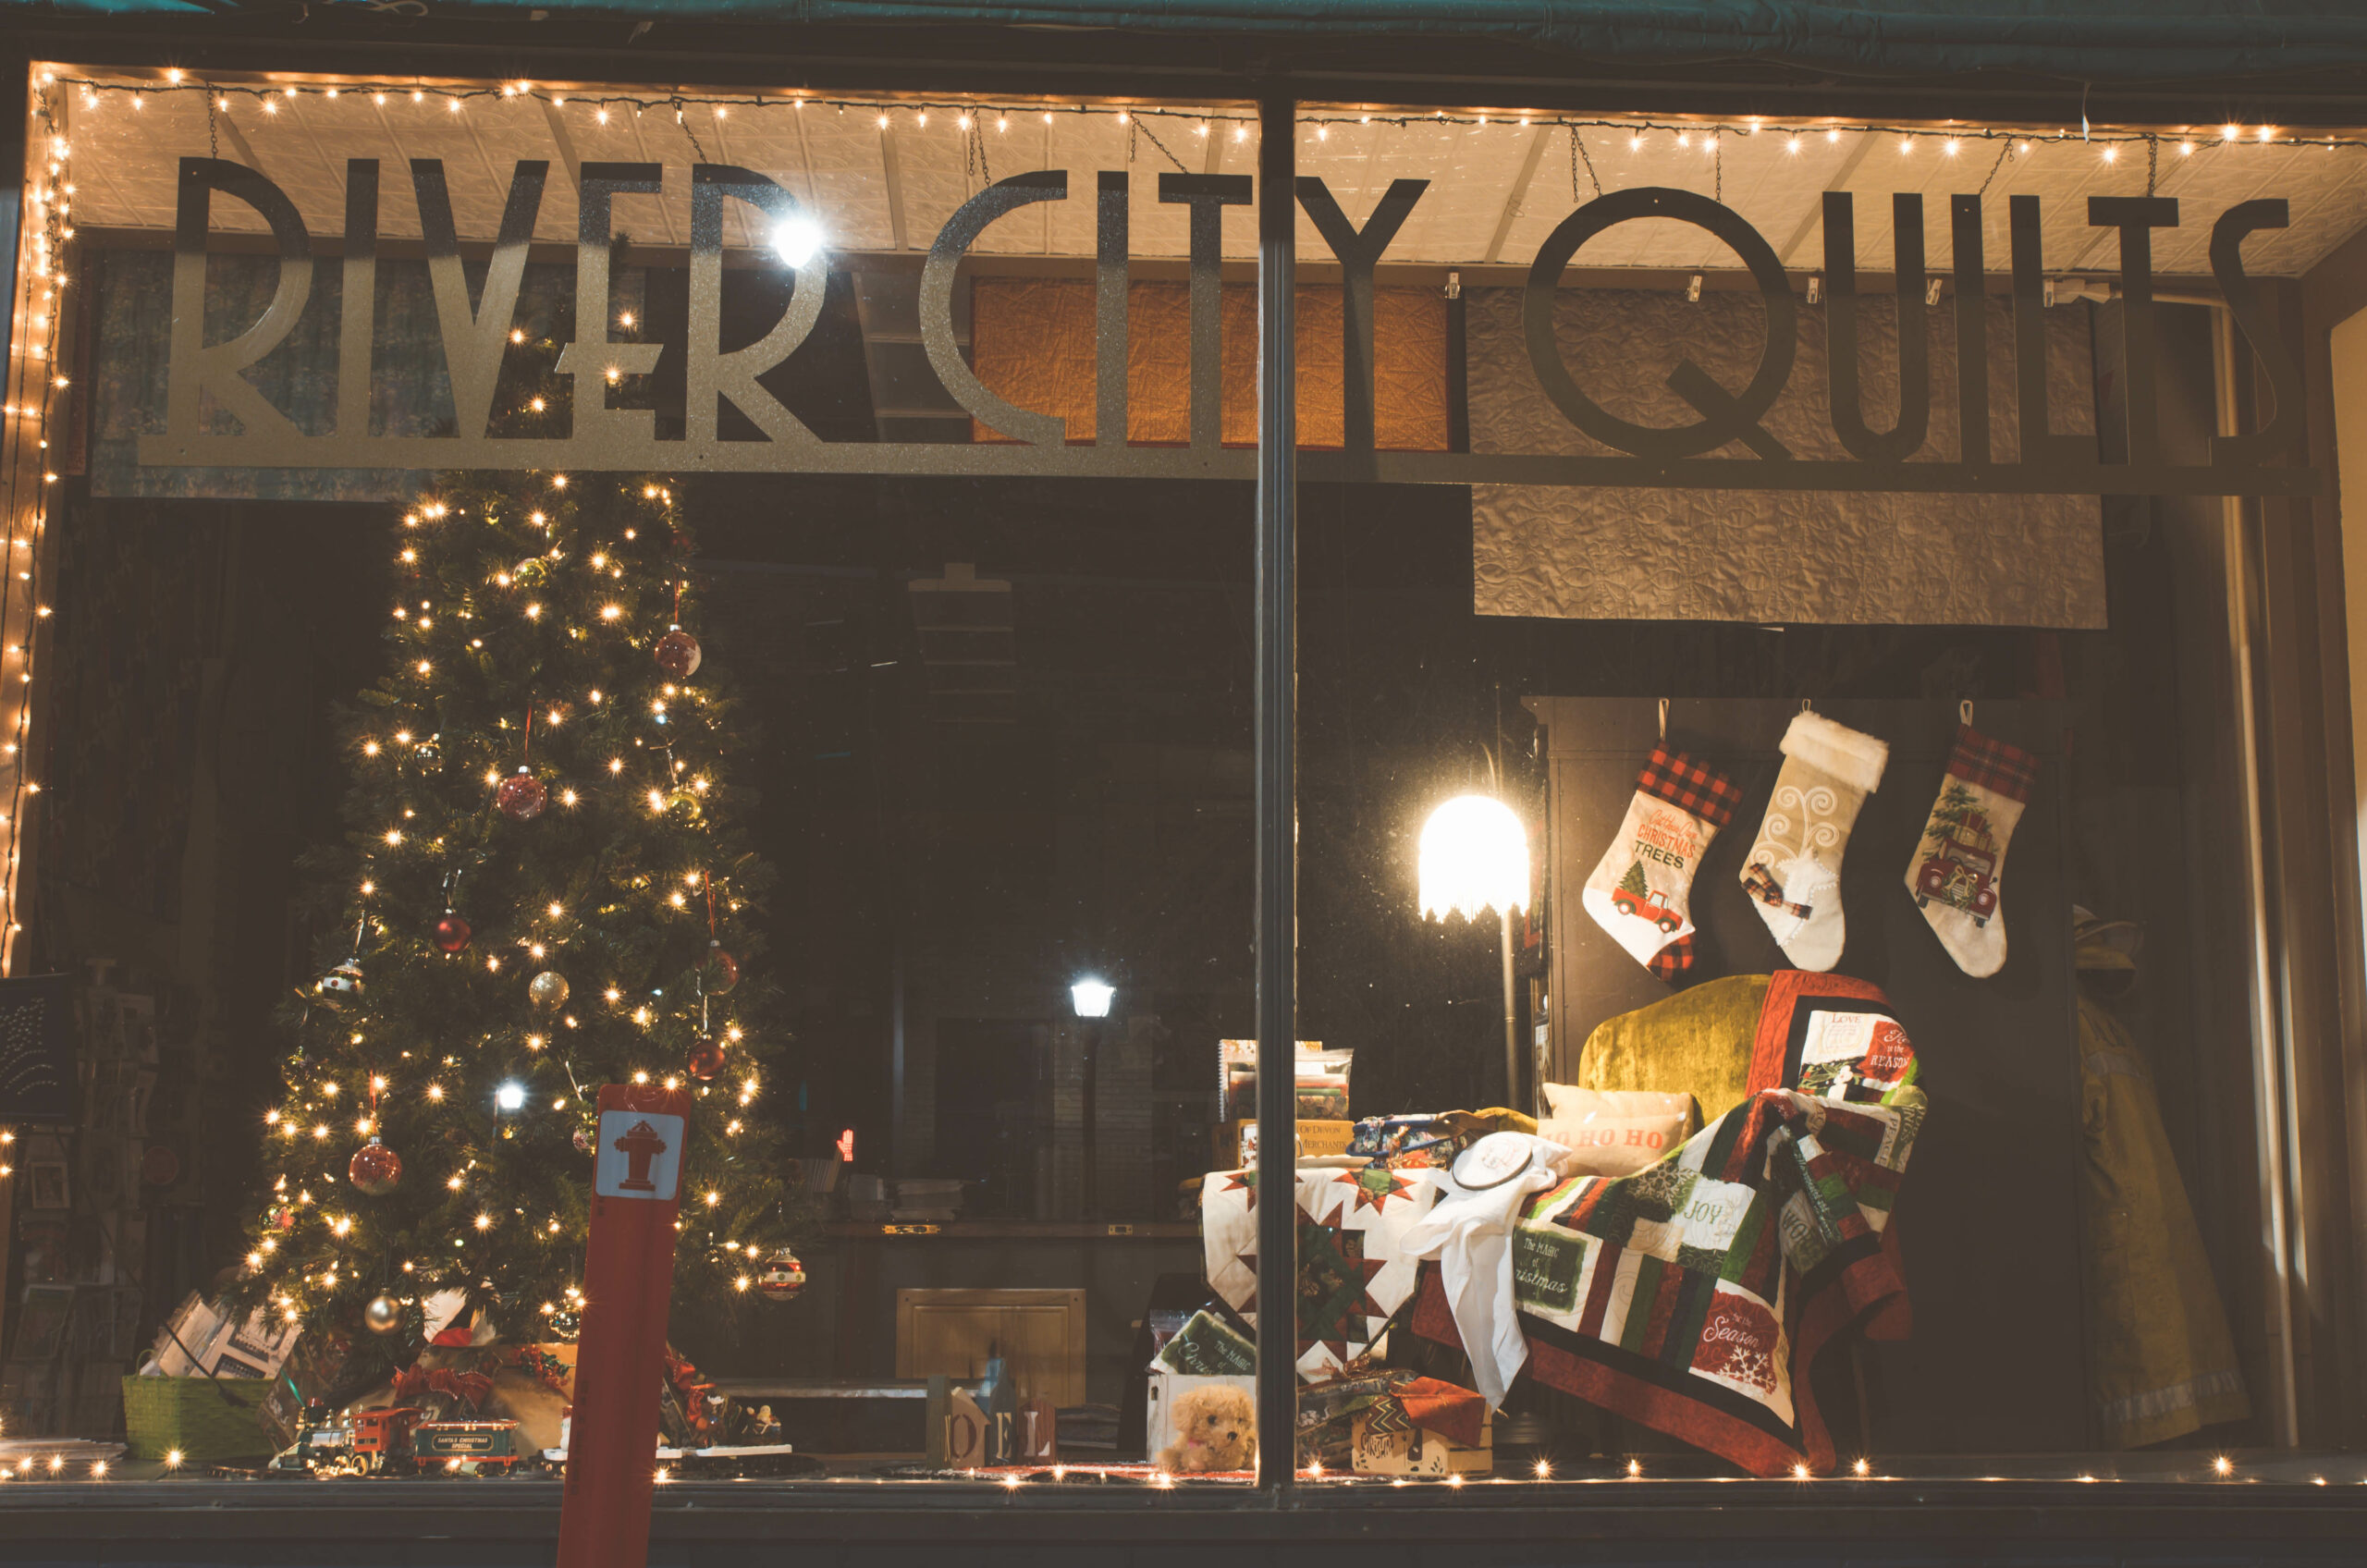 River City Quilts